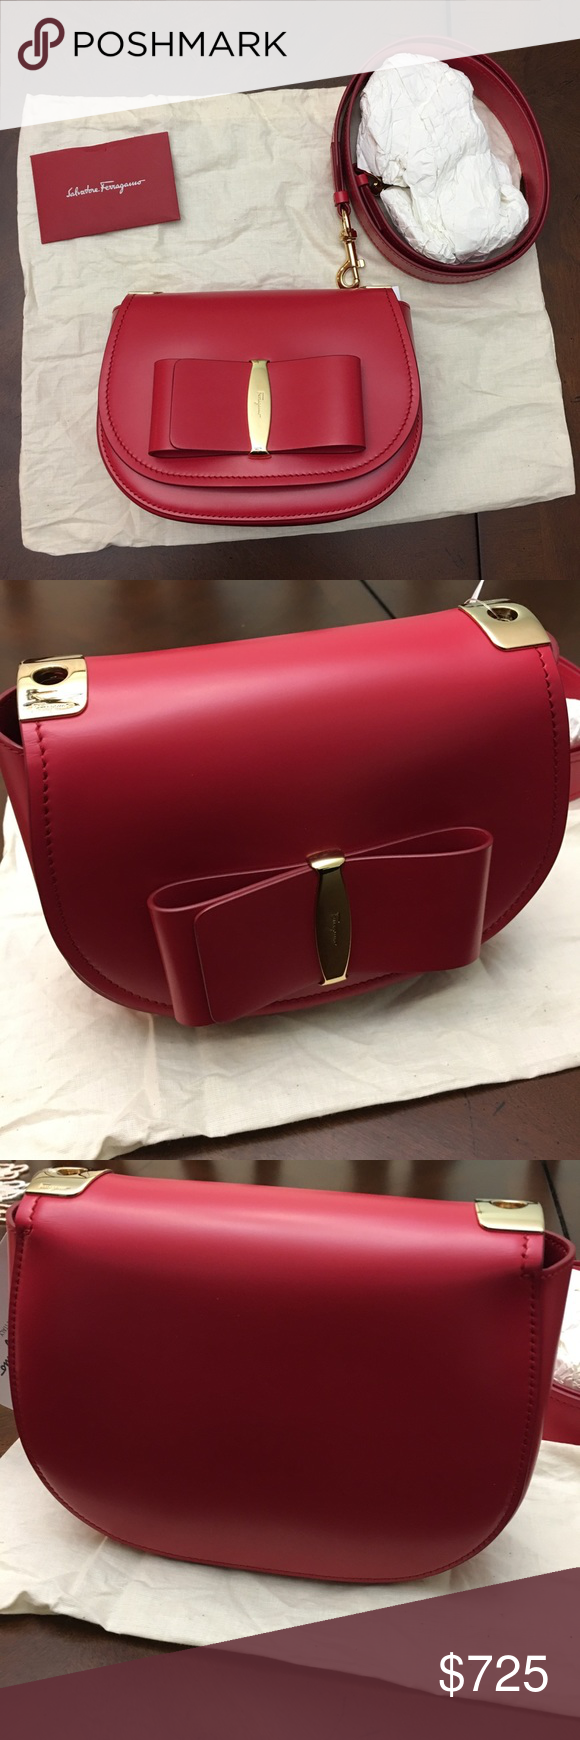 "8ba5887c3df6 Salvatore Ferragamo Pamplona ""Anna"" bag Red and gold Salvatore ferragamo  Pamplona ""Anna"" bag brand new comes with dust bag   sold out every where     ..."